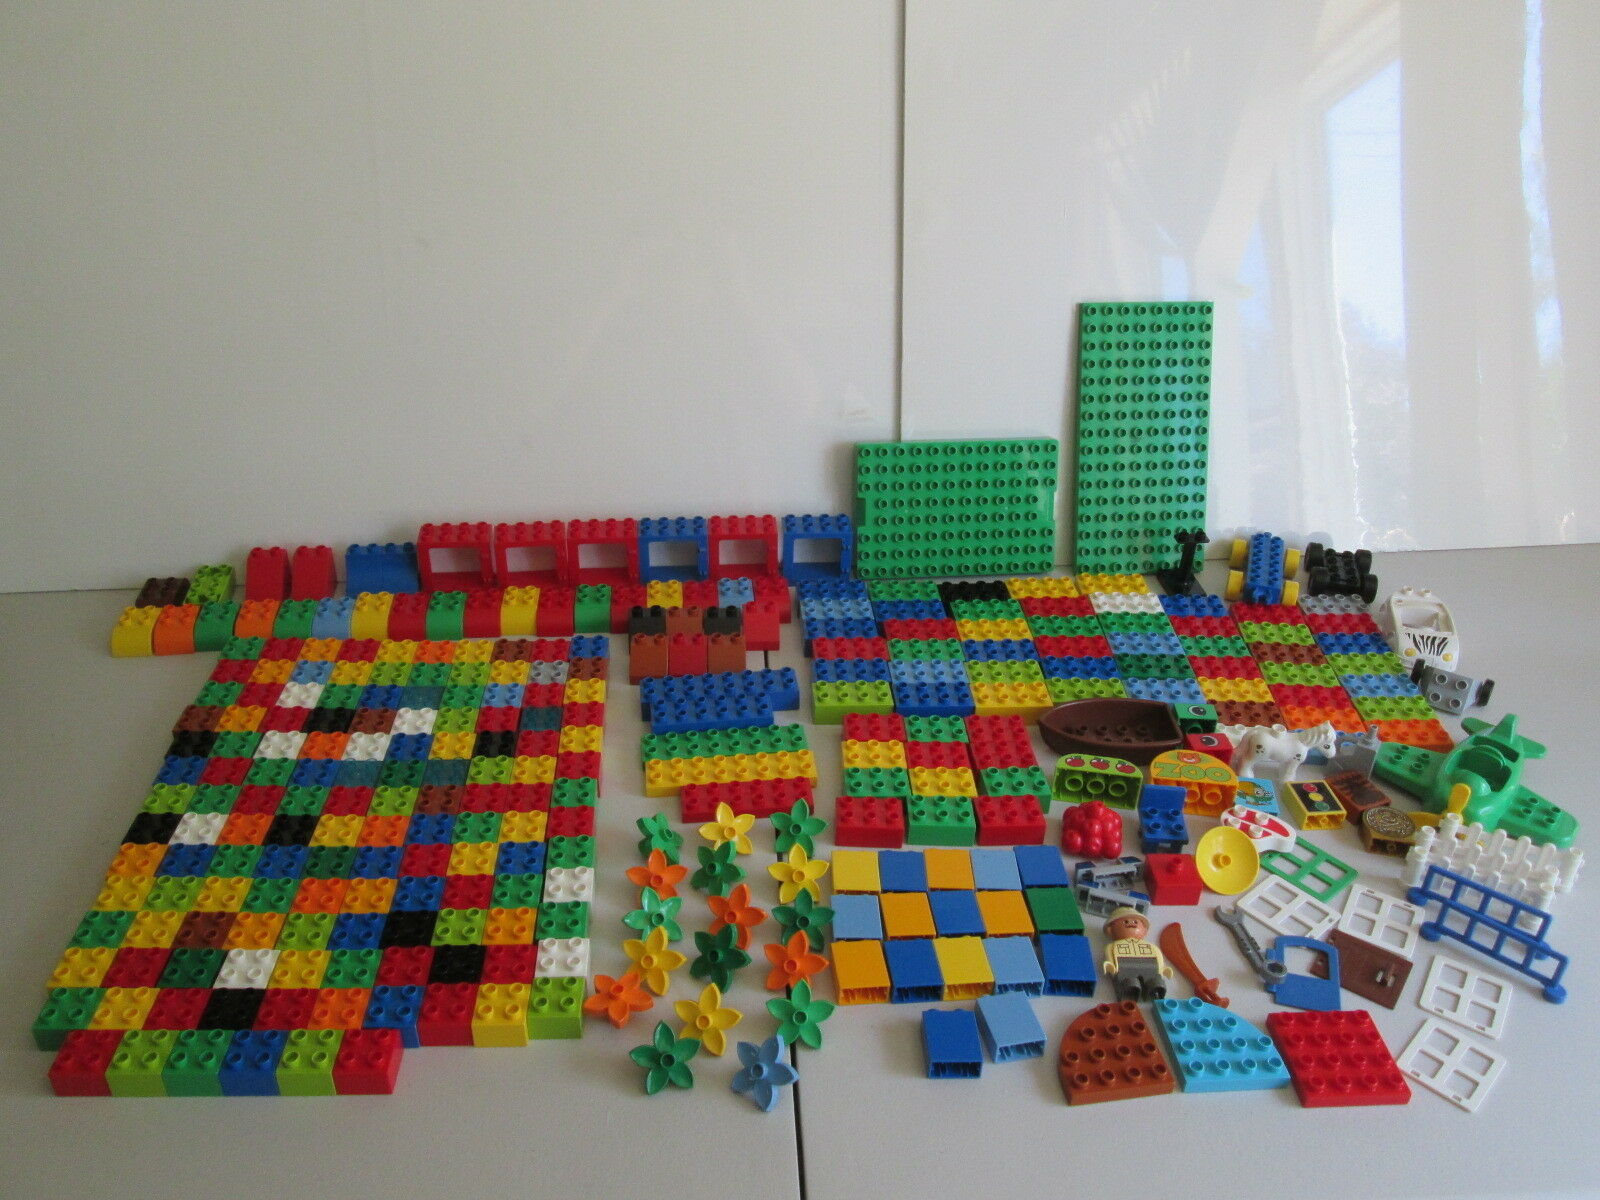 Lego Duplo Huge Lot 300+ Pieces Airplane Cars Police Light Horse Mini Figures